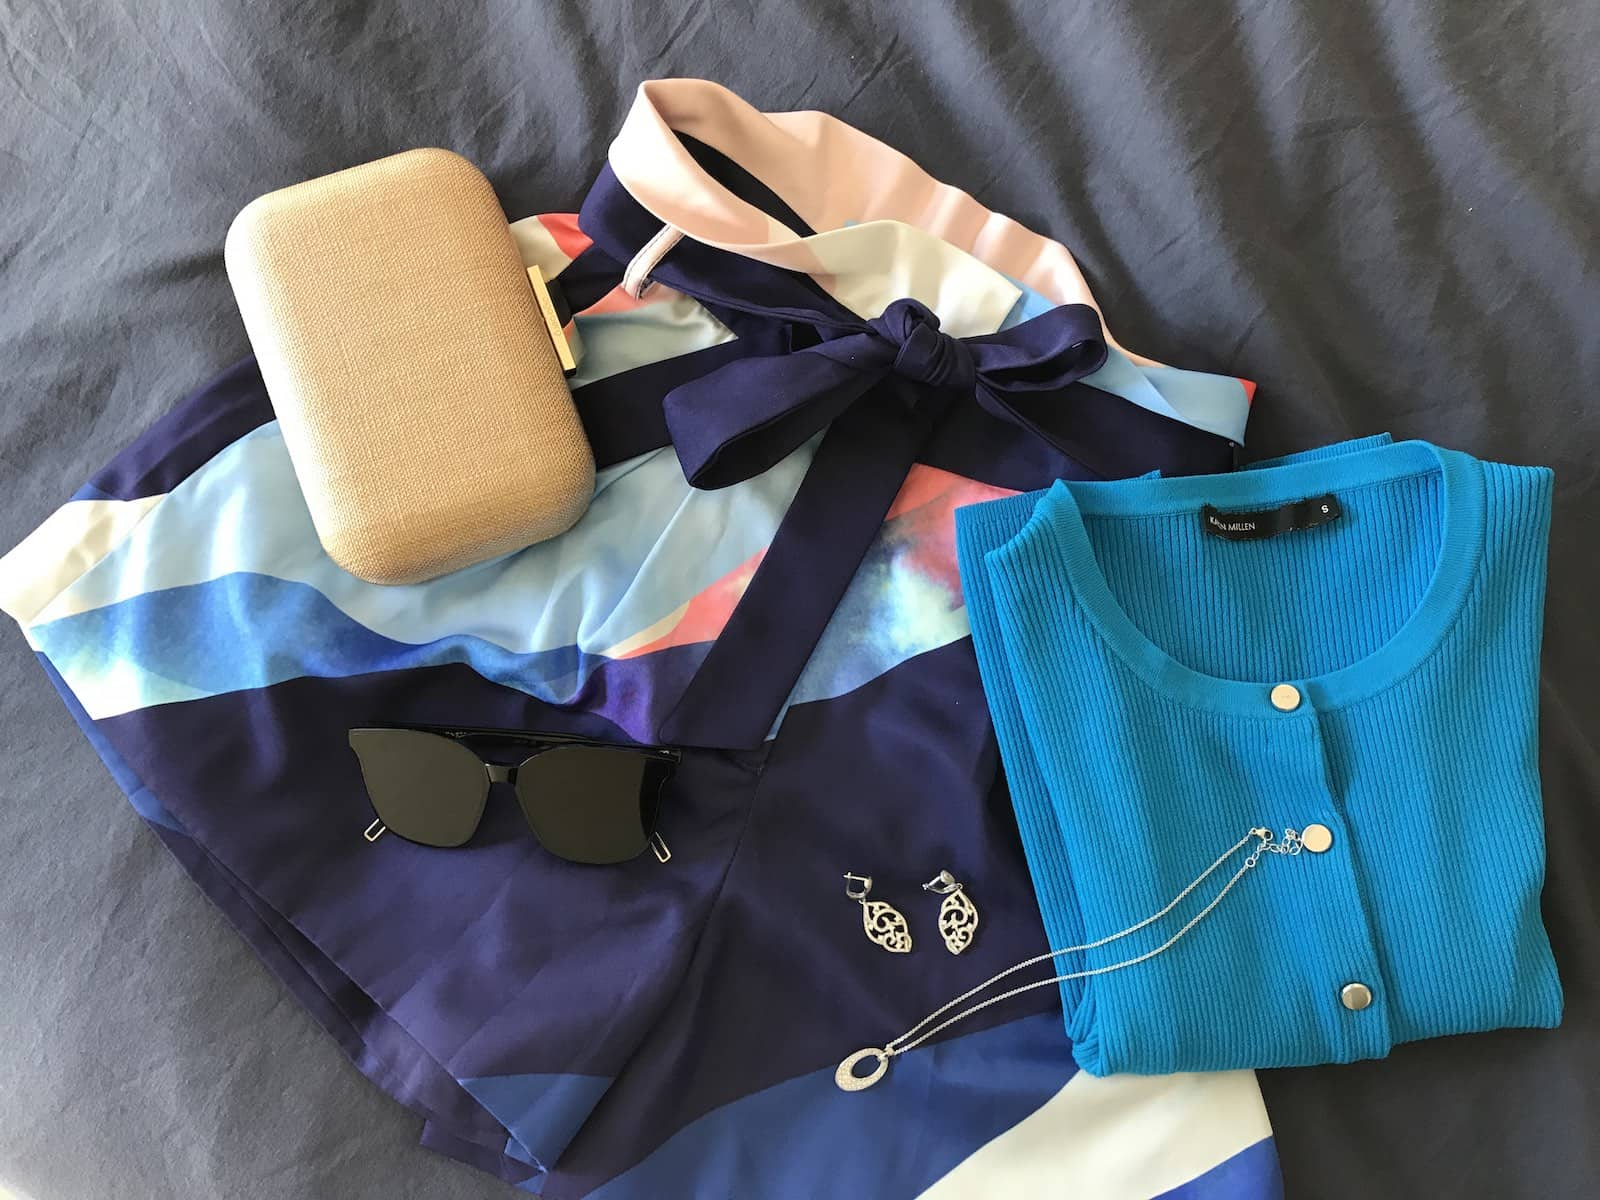 A flatlay of a pair of shorts with white, blue and pink print, with a folded bright blue cardigan, and some jewellery and sunglasses on top.